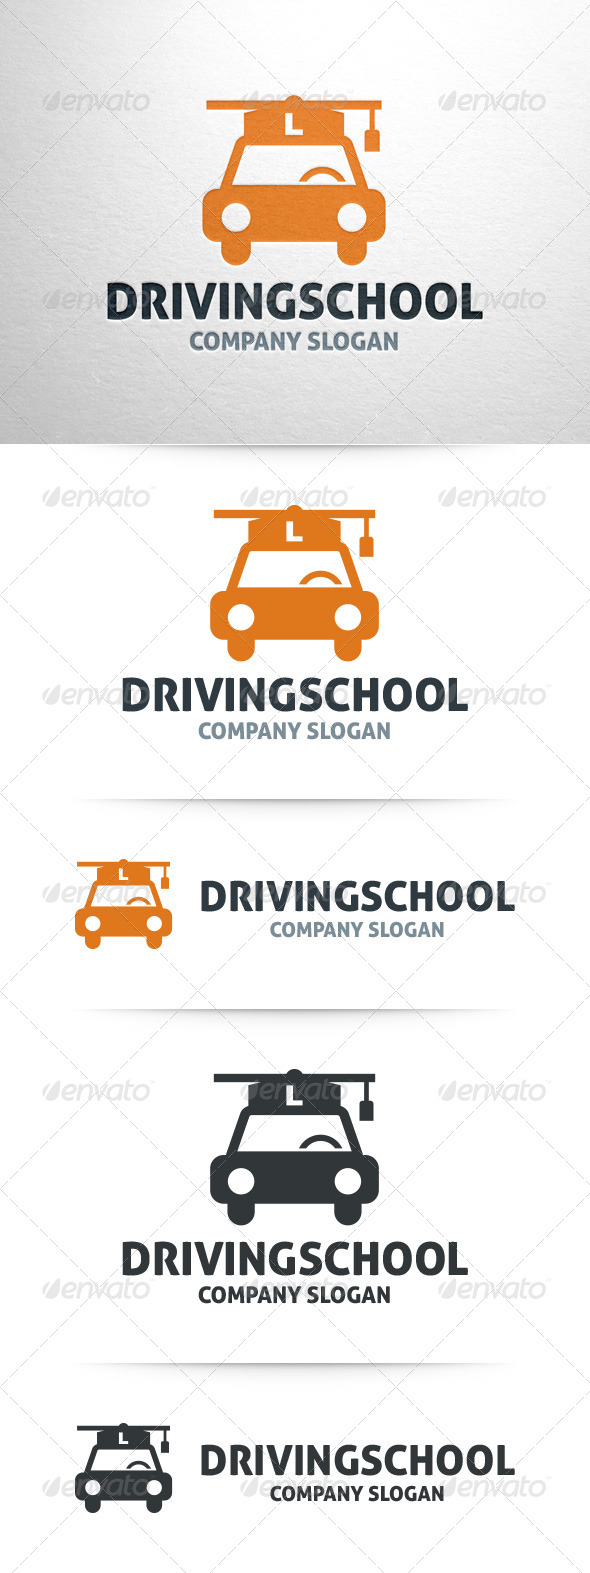 GraphicRiver Driving School Logo Template 7973001